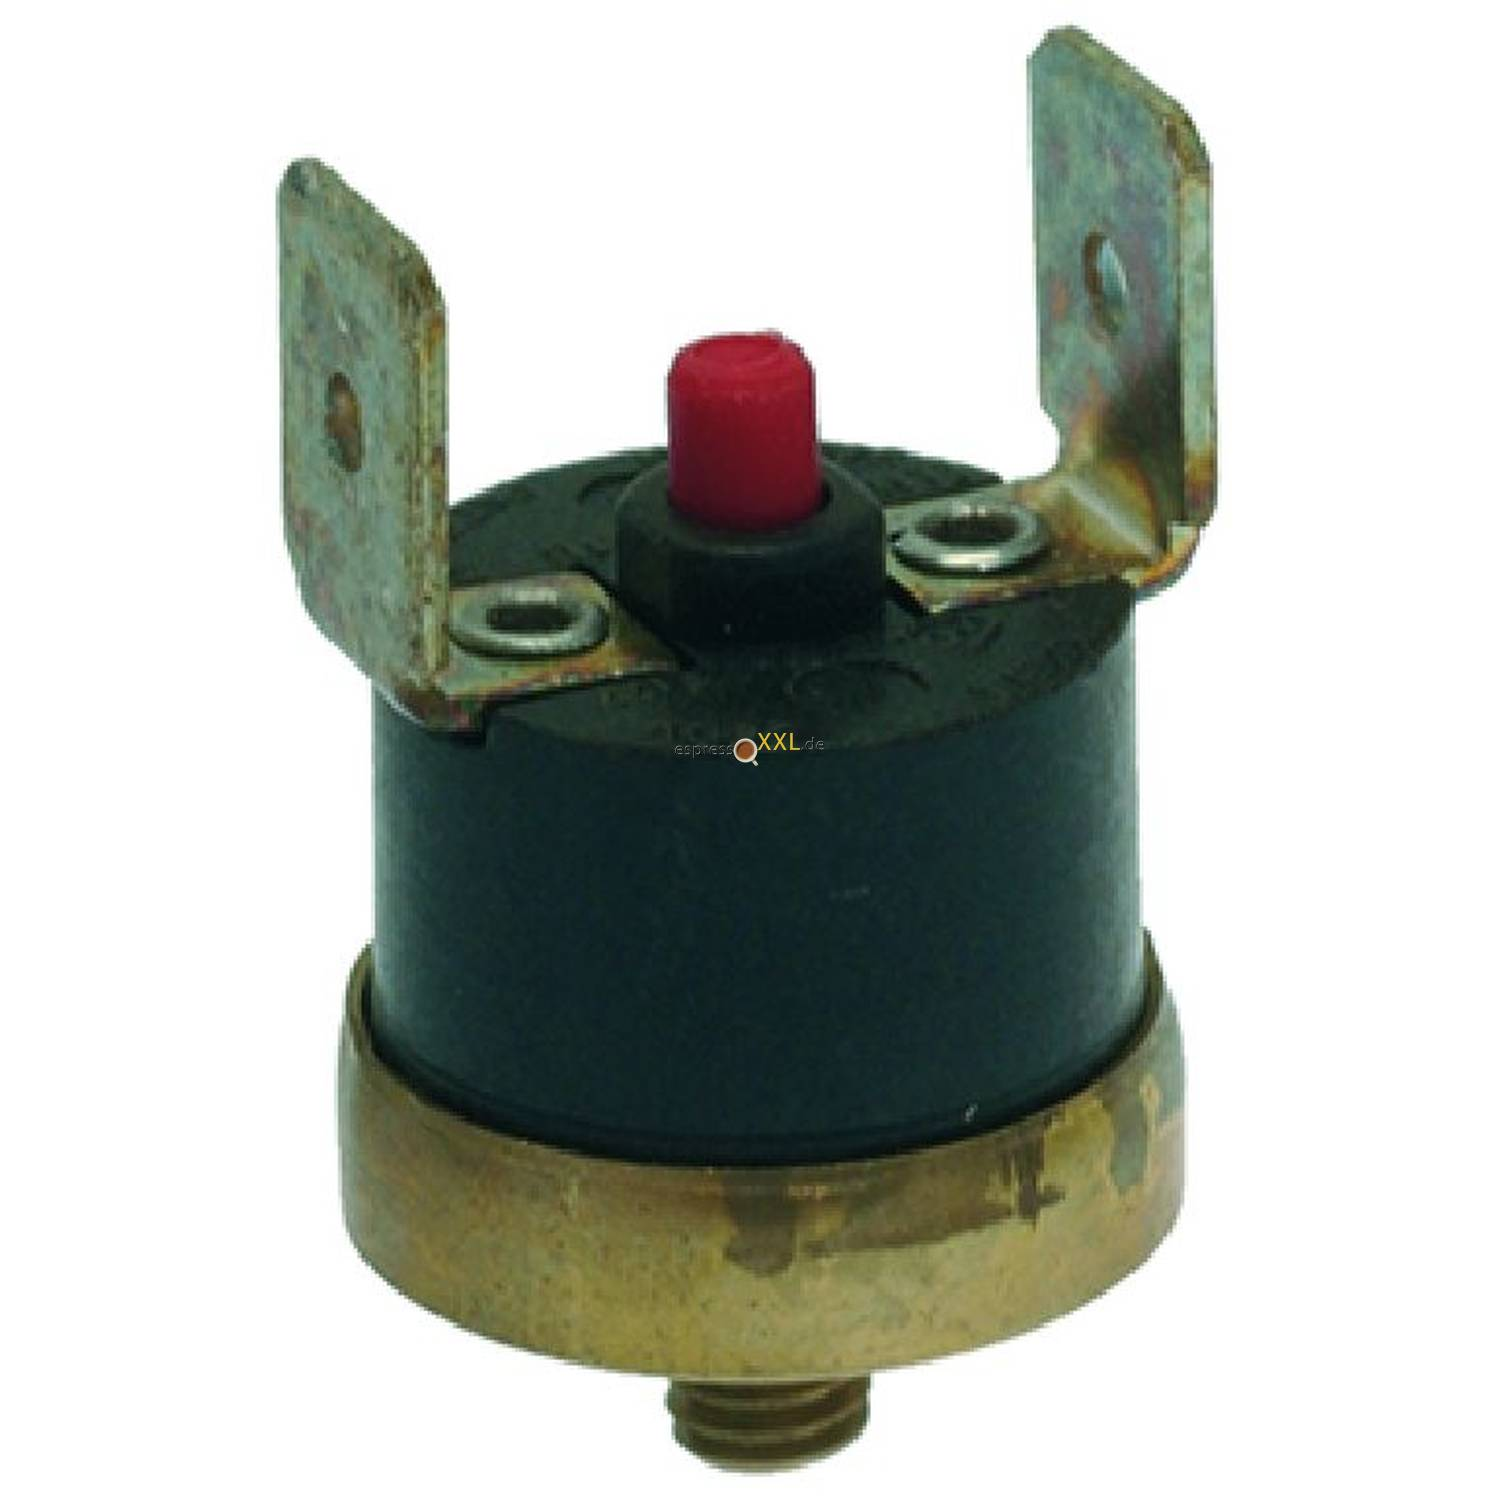 SICHERHEITS-ANLEGE-THERMOSTAT | 135 °C | M4 | 1NC | 1-POLIG 16A